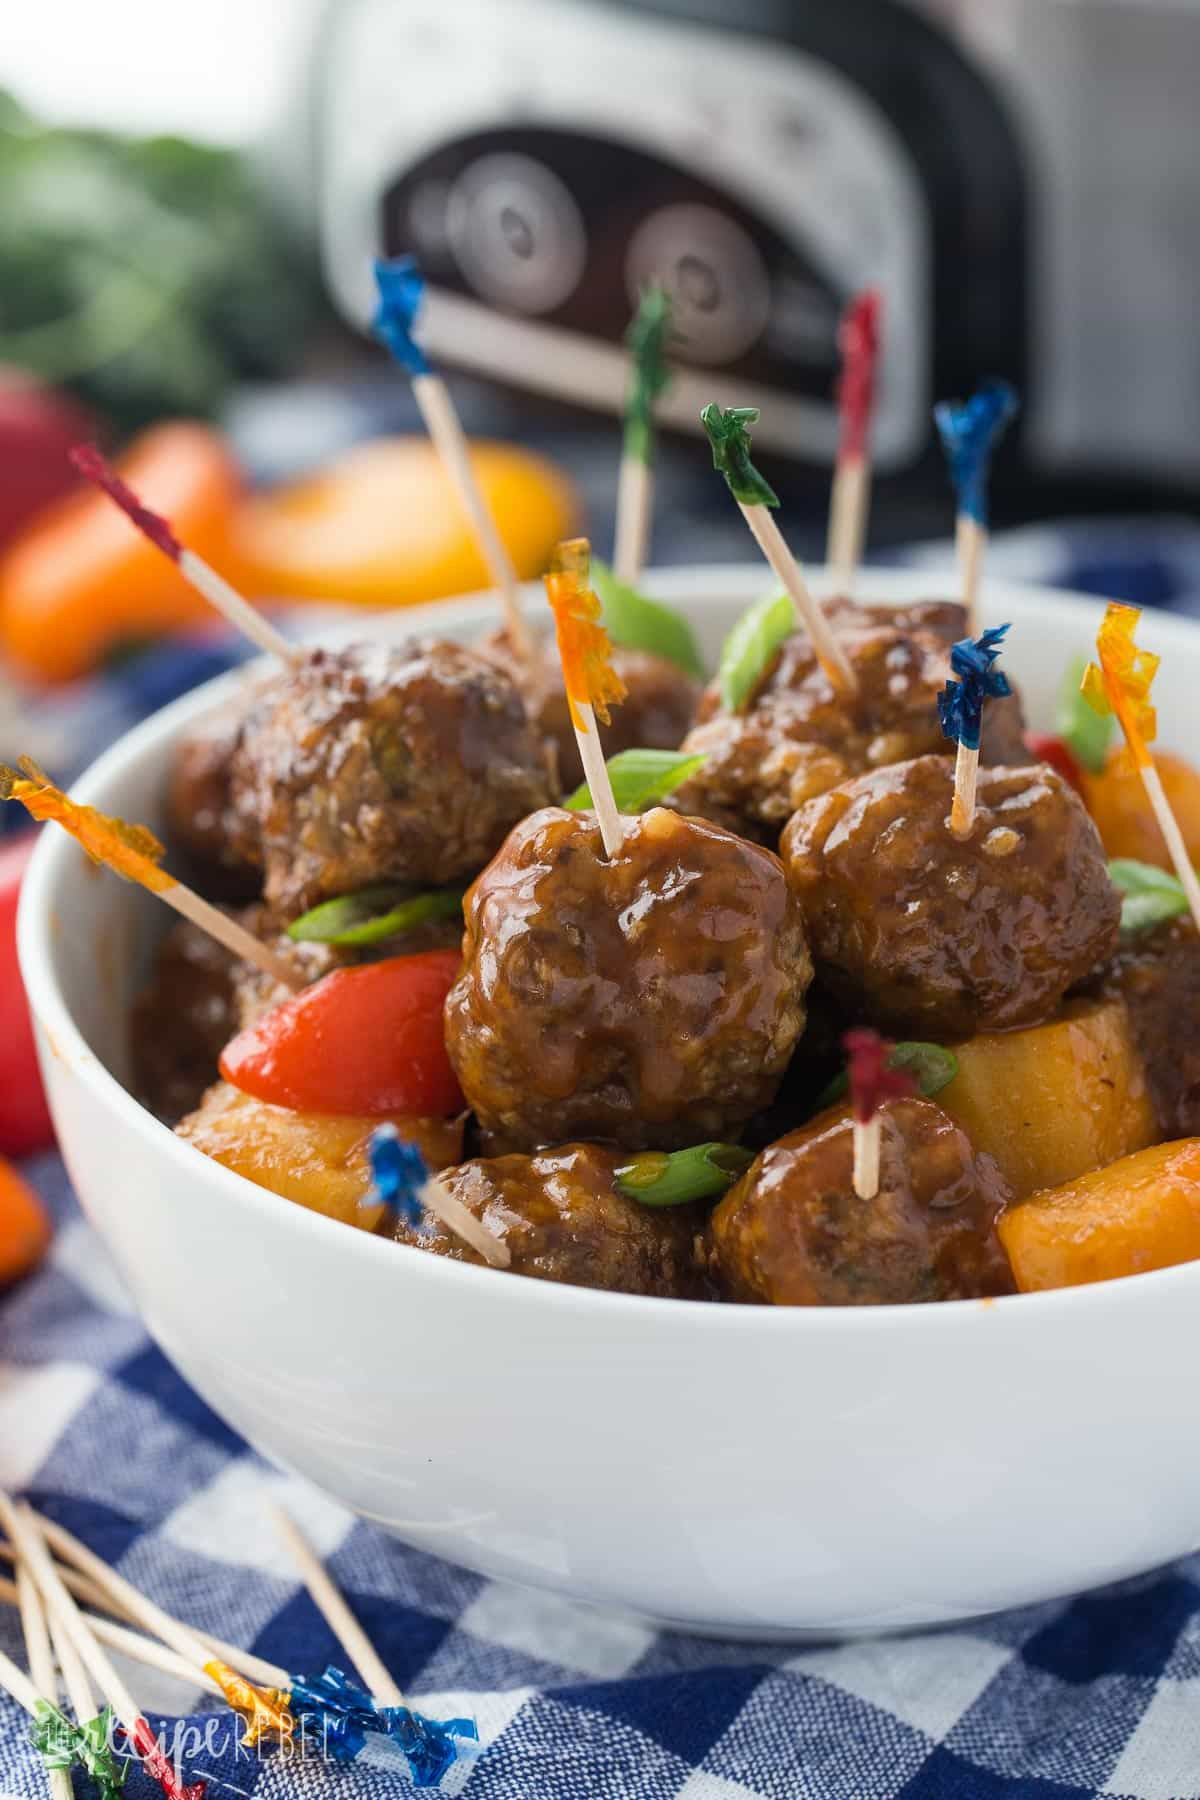 Slow Cooker Appetizers  Slow Cooker Pineapple Brown Sugar Meatballs easy appetizer